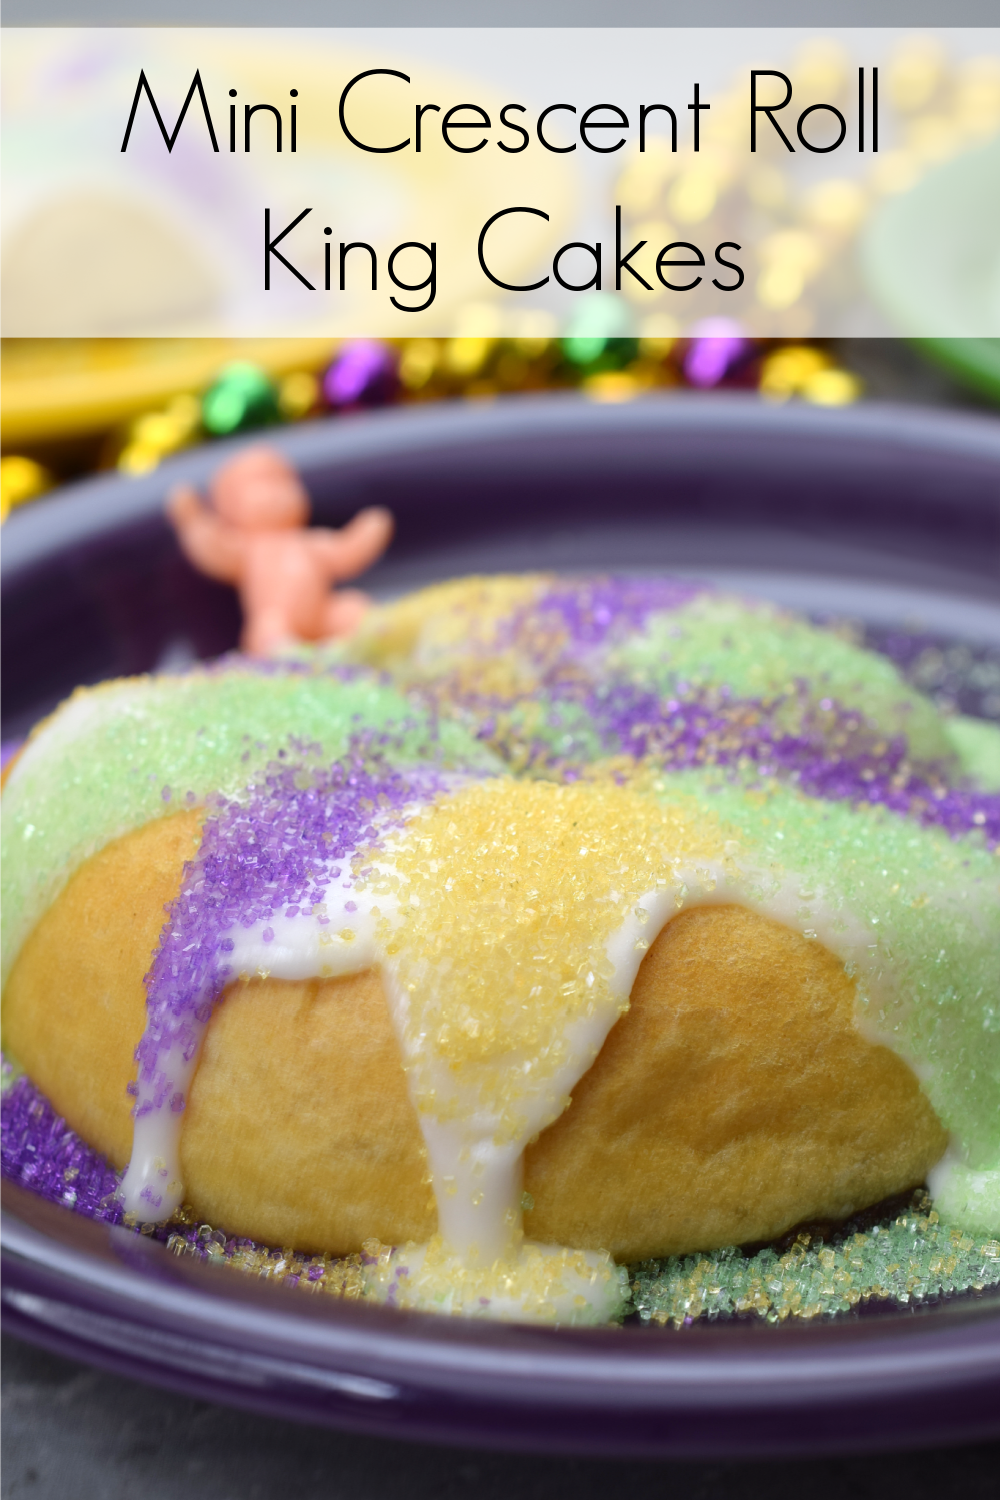 Mini crescent roll king cakes on purple plate with mardi gras beads and plastic baby in the background.